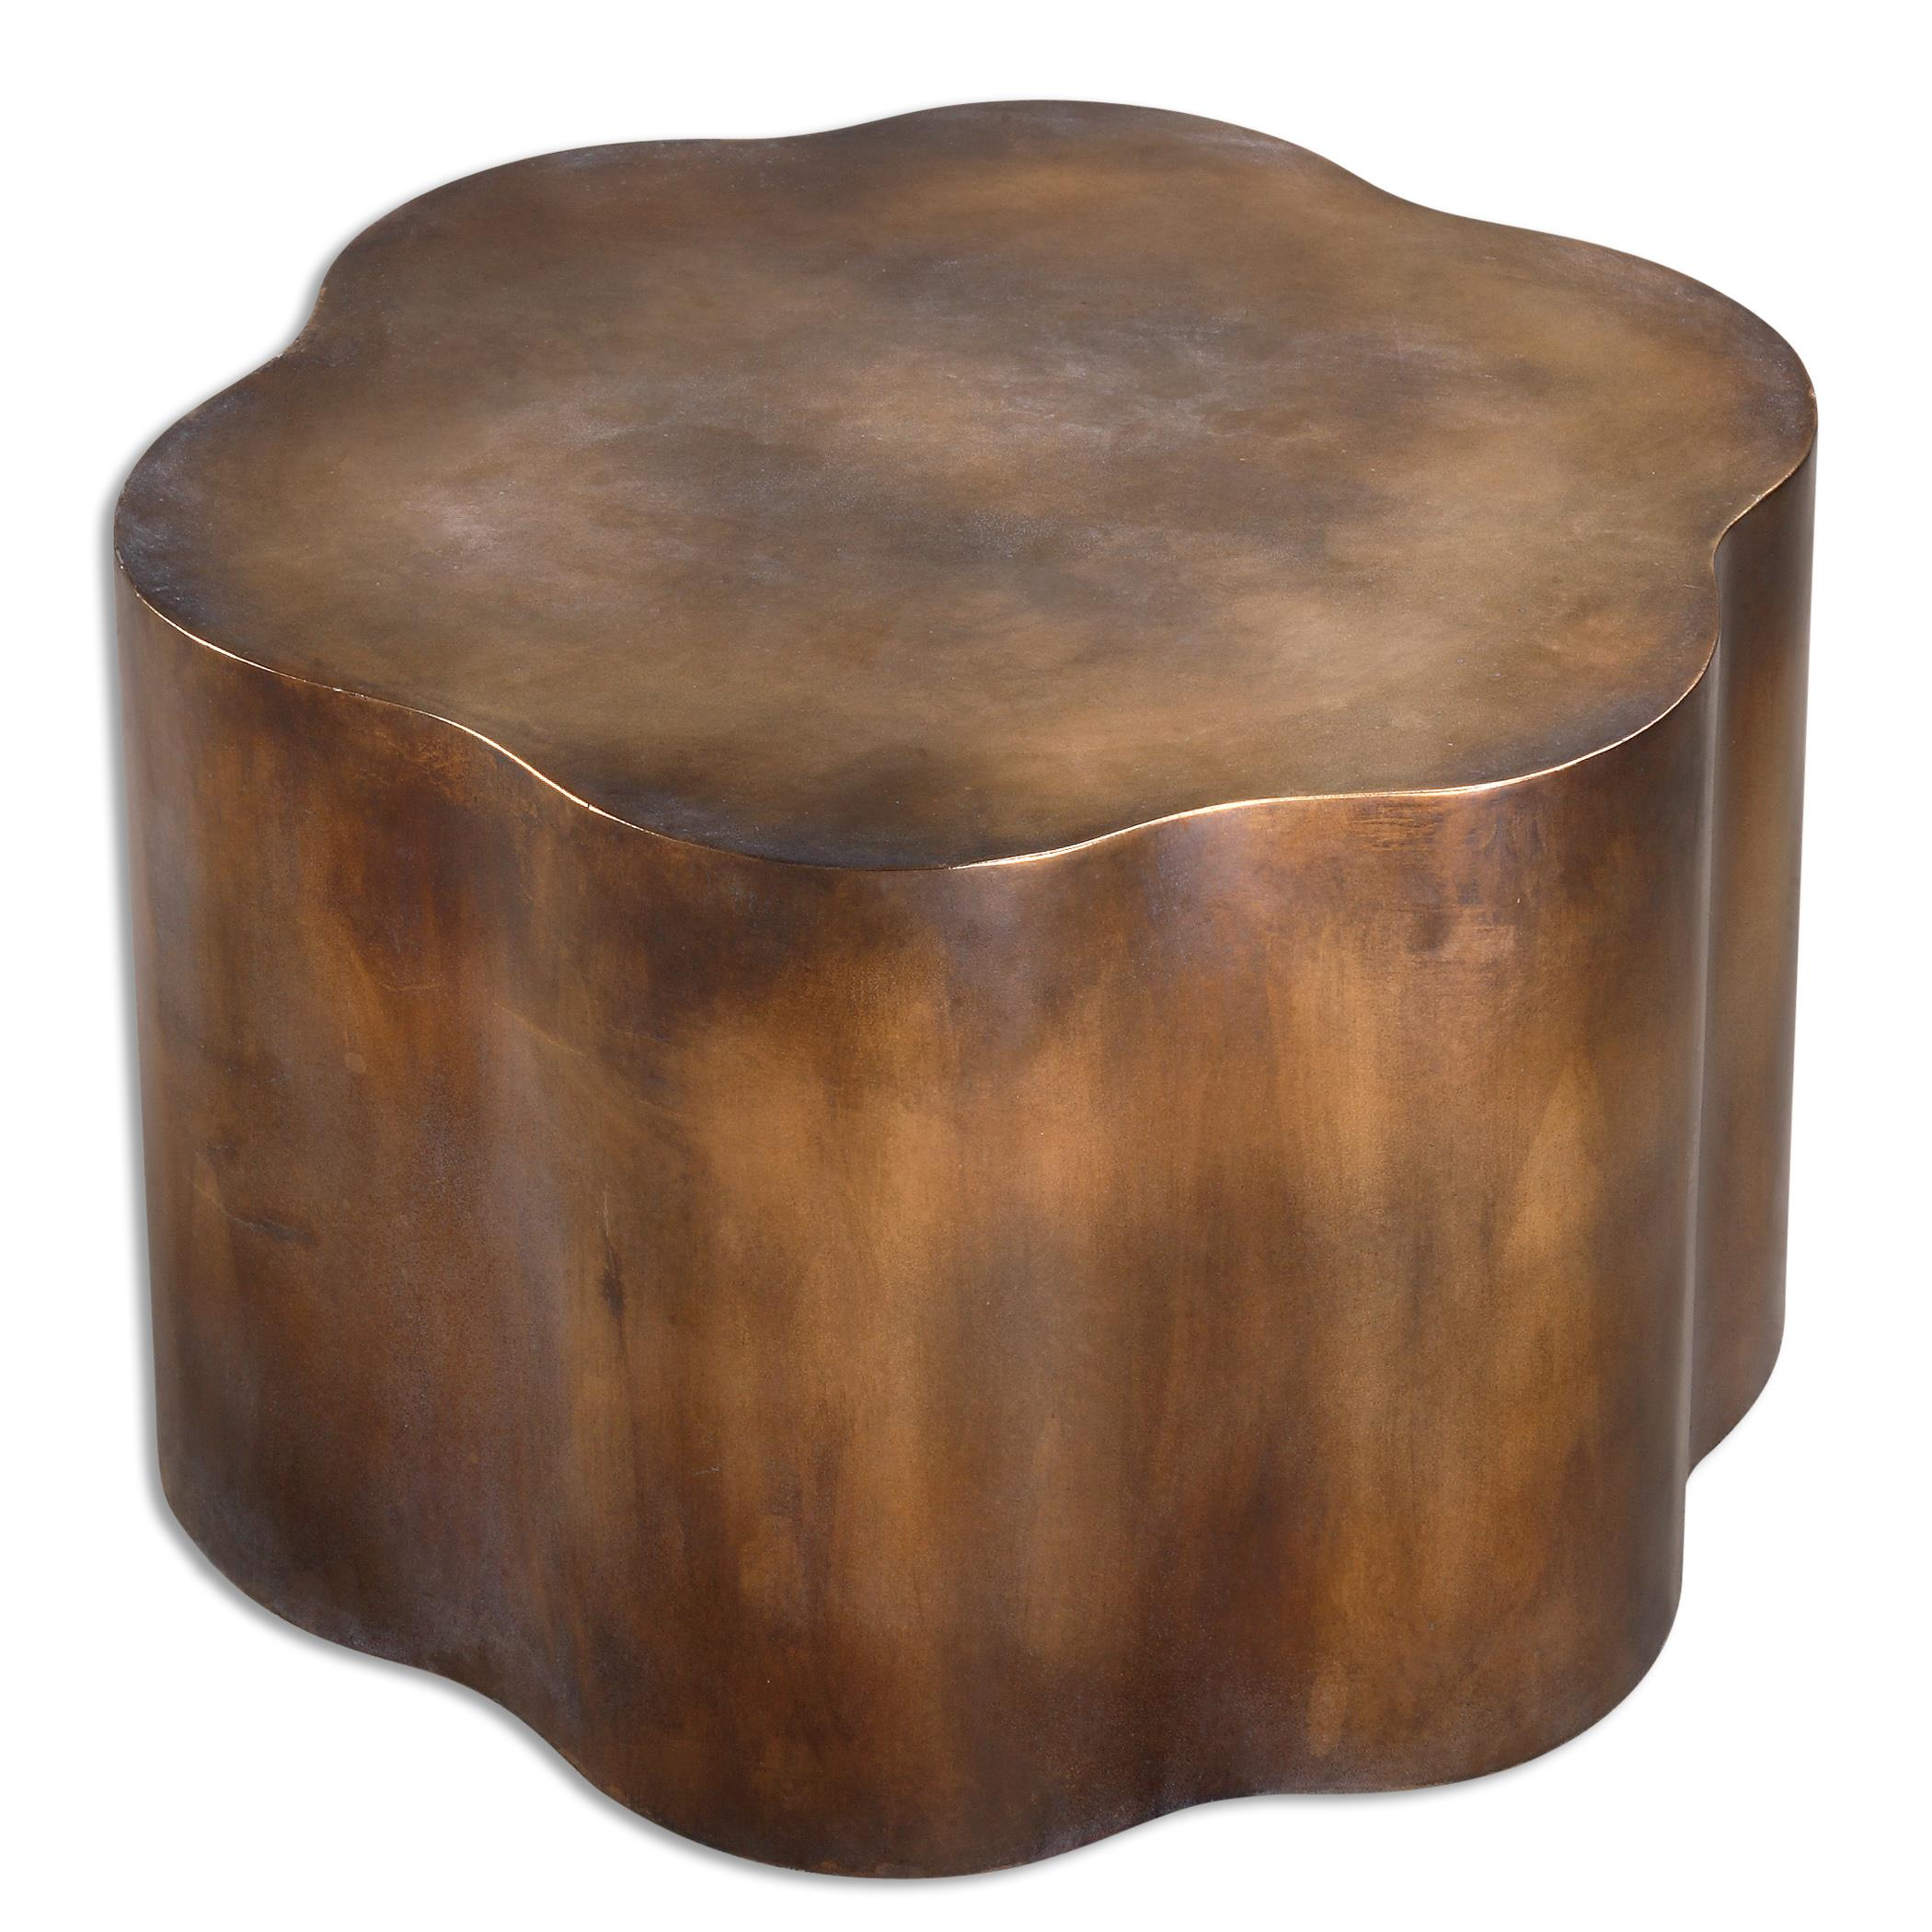 Accent Furniture - Occasional Tables Sameya Oxidized Copper Accent Table by Uttermost at Goffena Furniture & Mattress Center